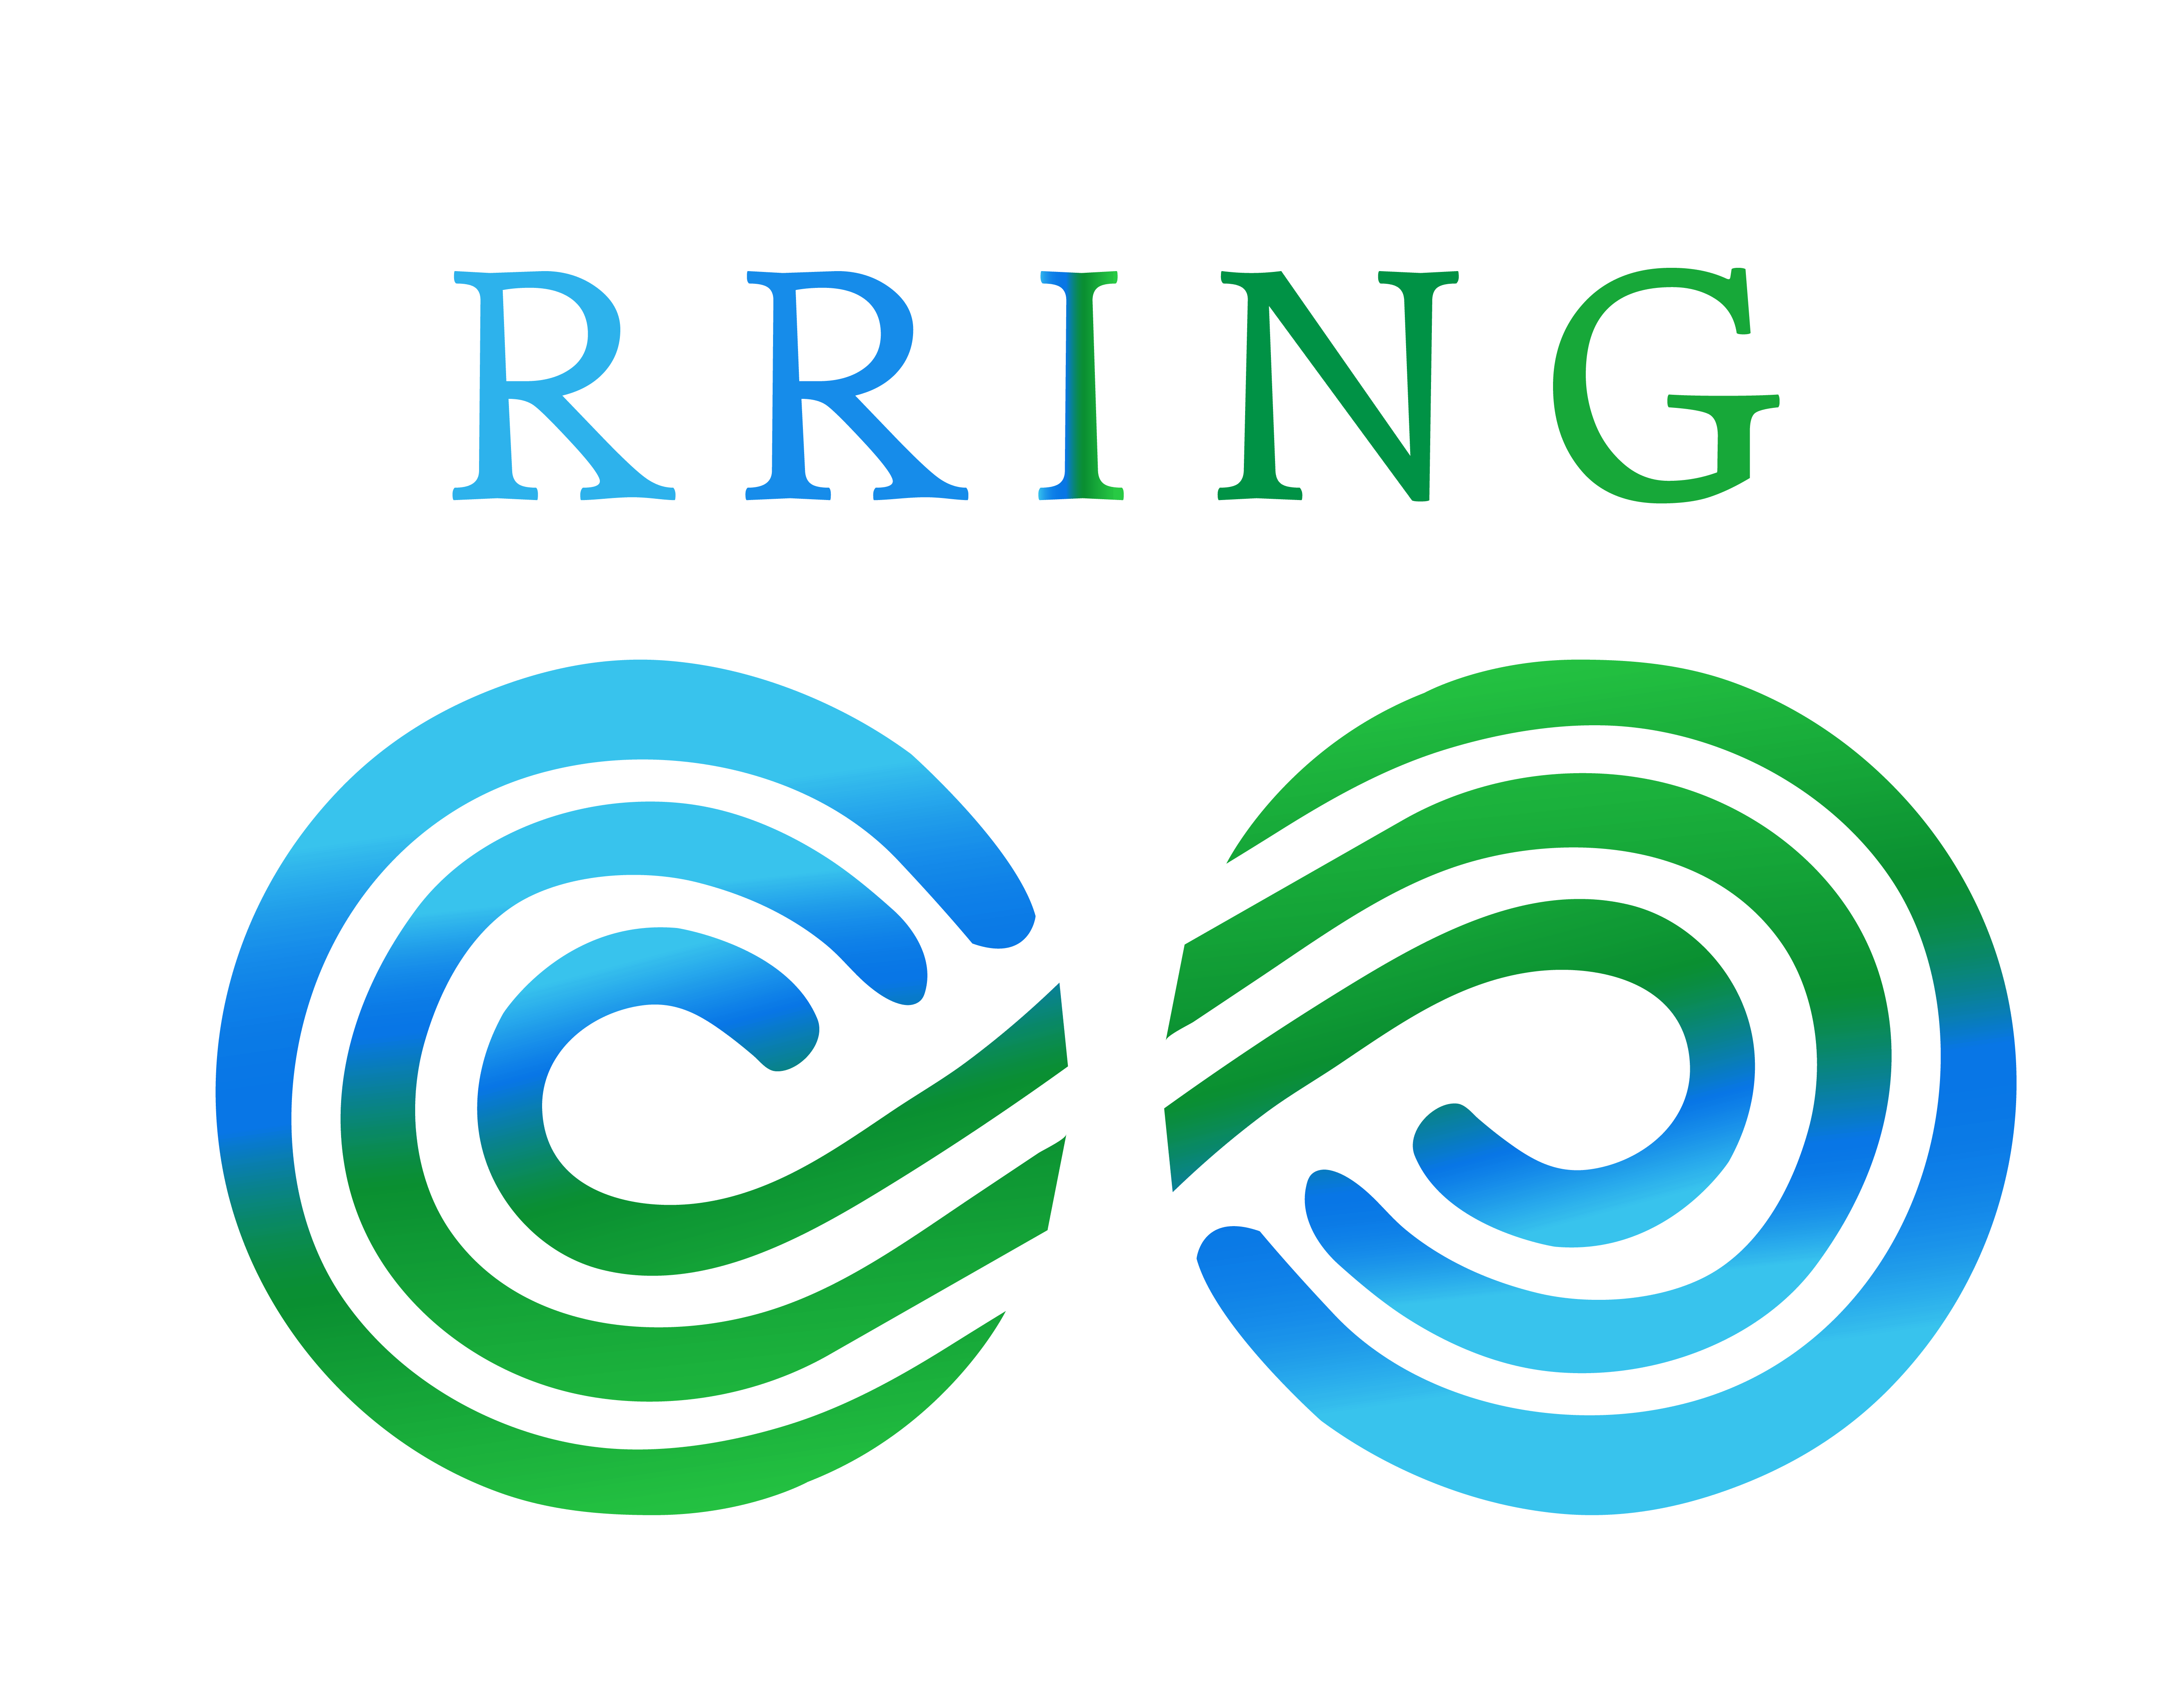 RRING Project